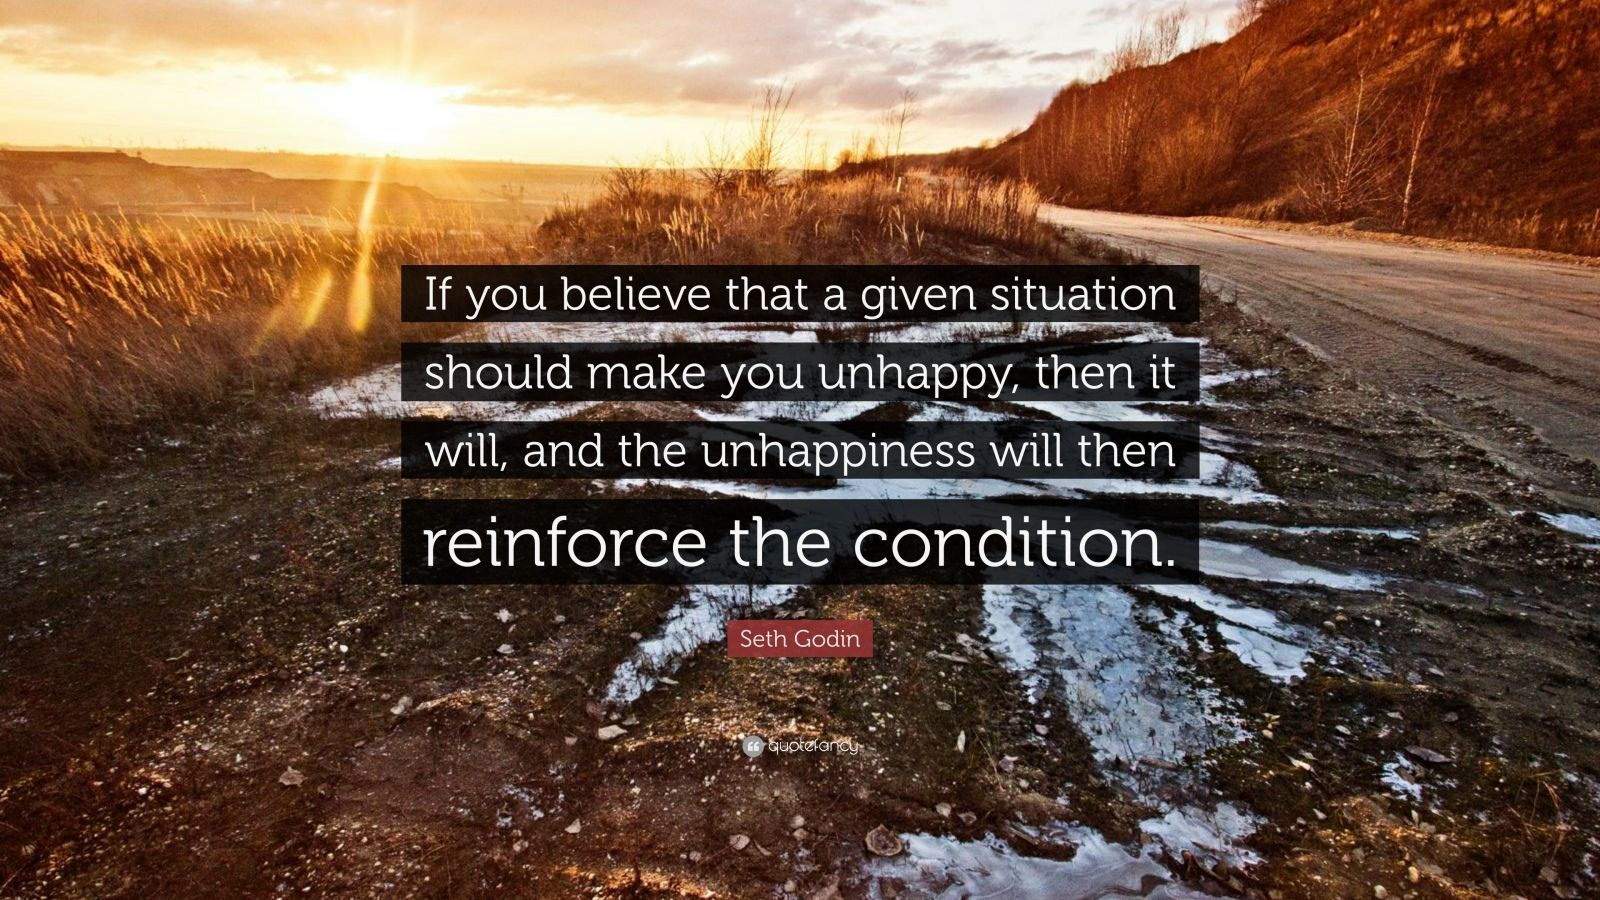 """Seth Godin Quote: """"If you believe that a given situation should make you unhappy, then it will, and the unhappiness will then reinforce the condition."""""""